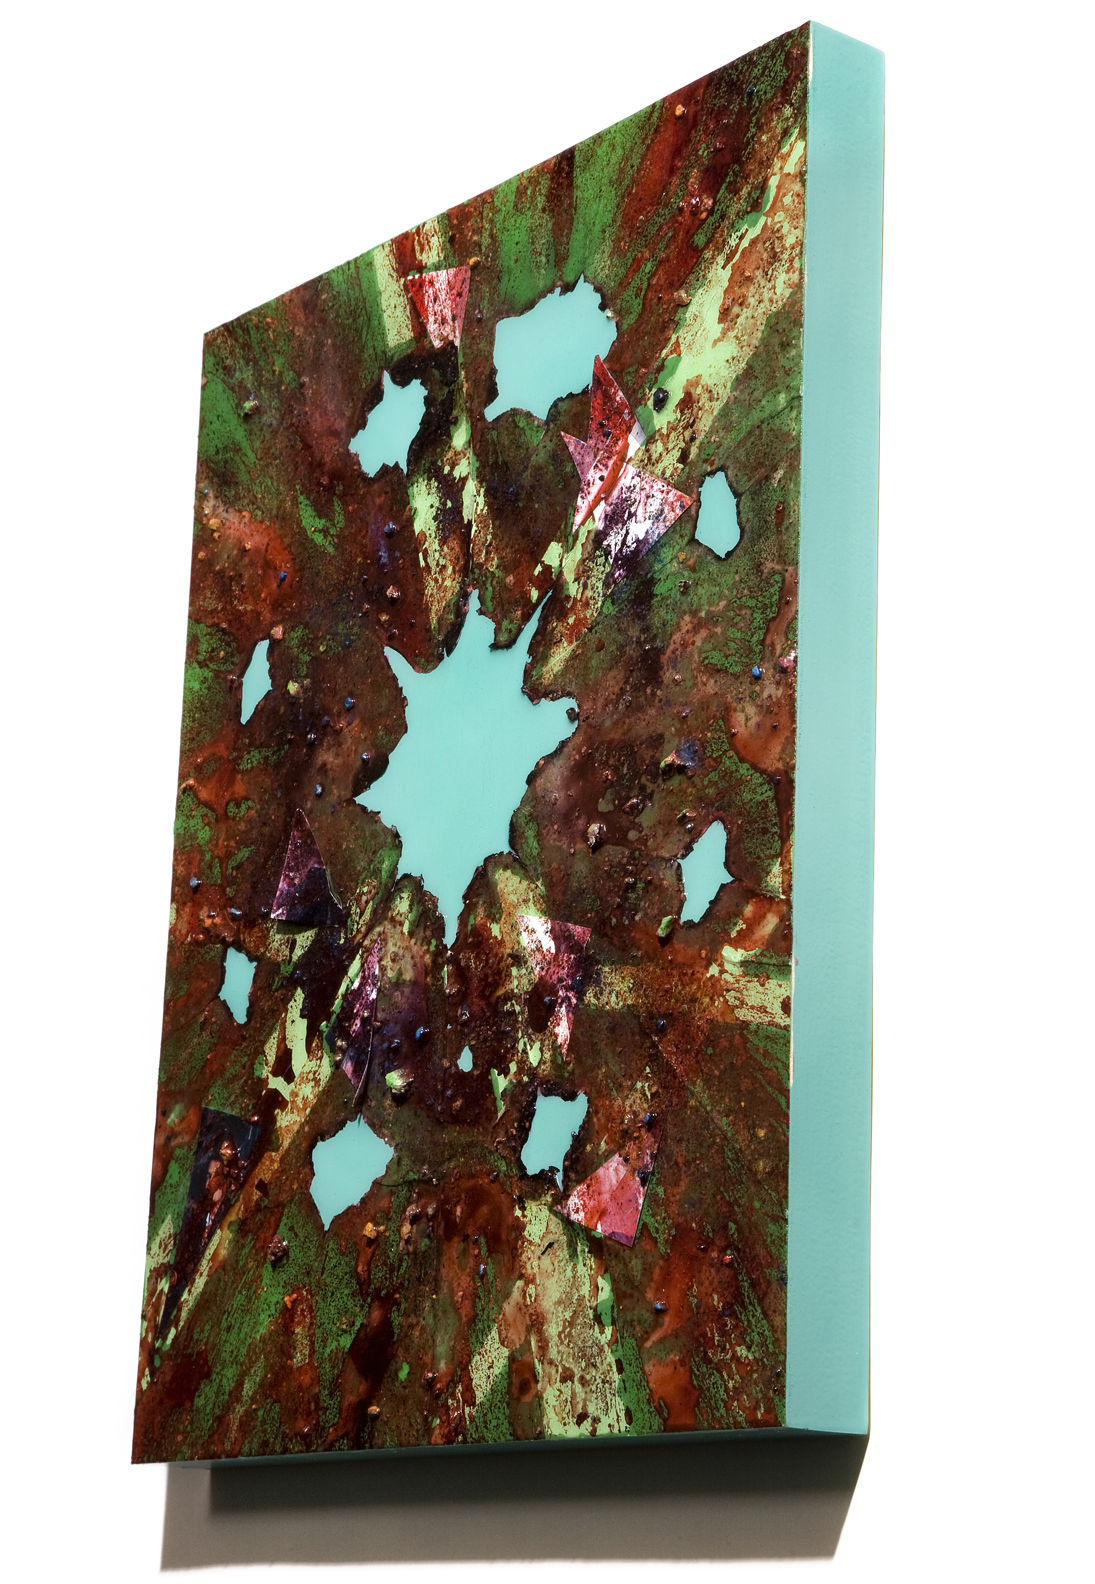 """SERIE I, Untitled SIDE VIEW (green/malachite), photographs, photo background paper, chalk, spray paint, packing tape, powder drink, glue, epoxy resin on wood panel, 16""""x20""""x2"""", 2019"""